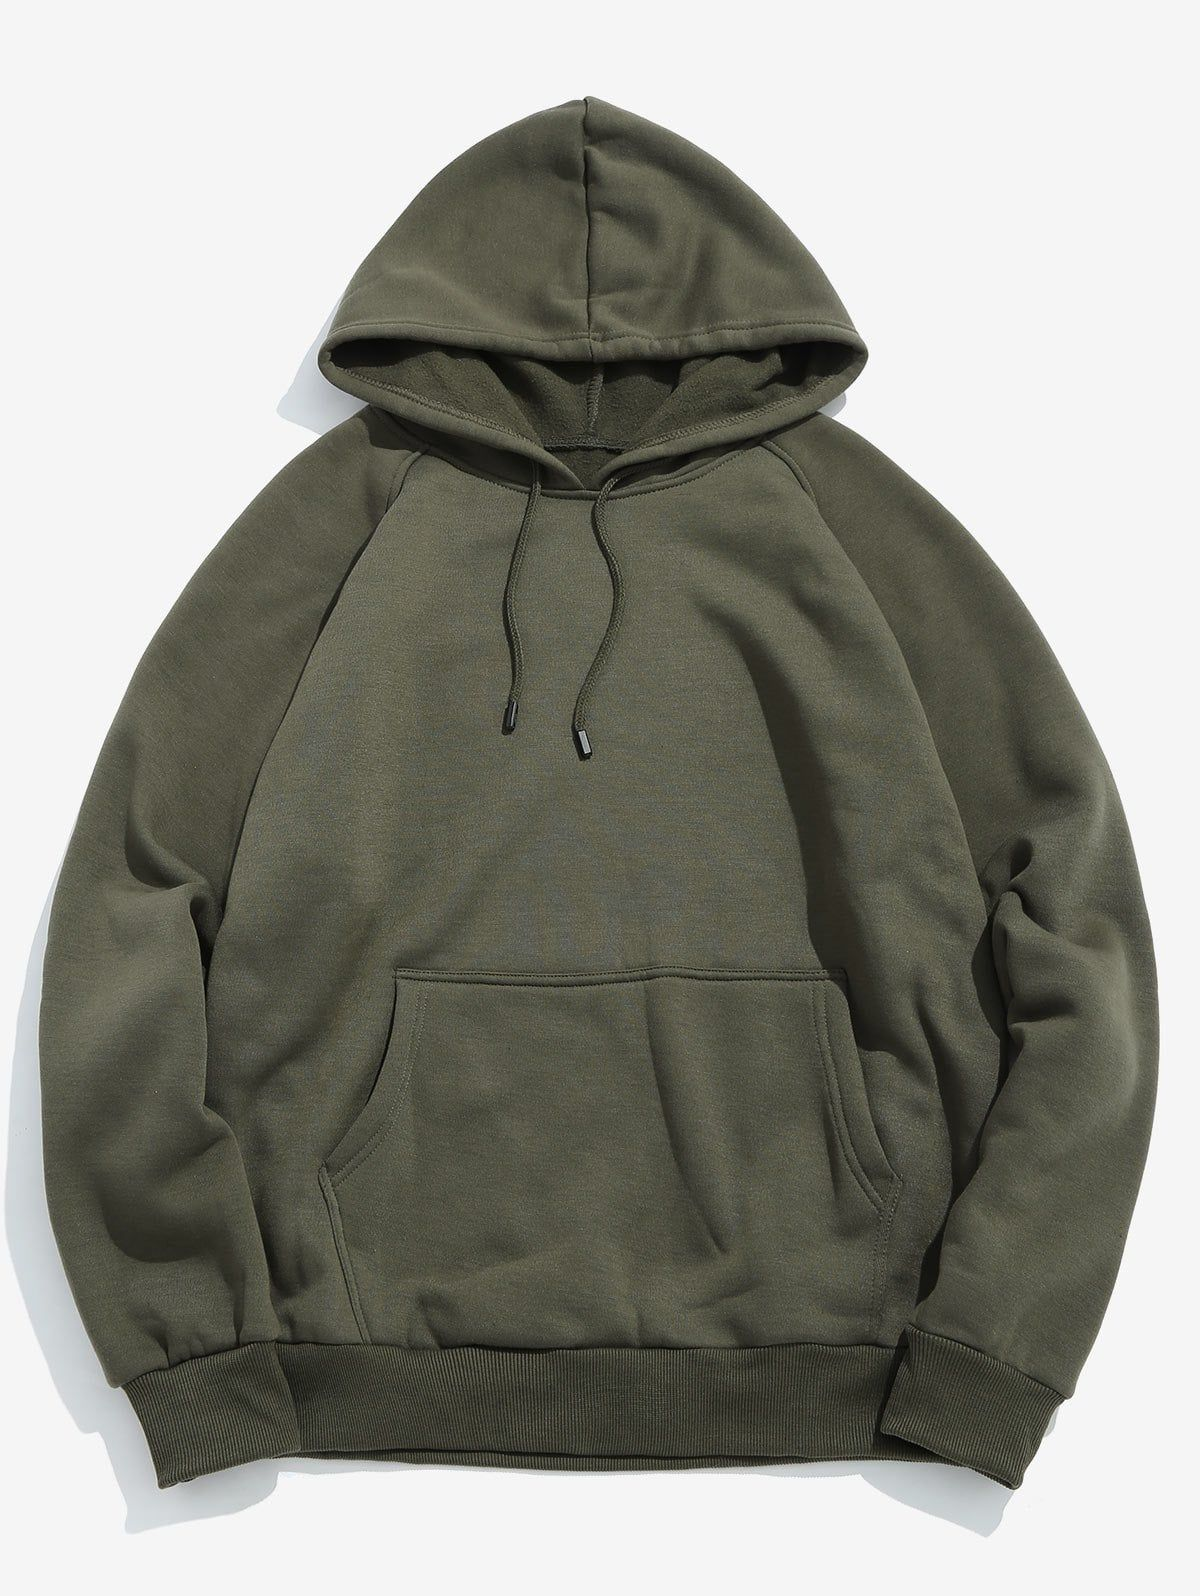 Basic Solid Pouch Pocket Fleece Hoodie Army Green Green Hoodie Men Fleece Hoodie Basic Hoodie [ 1596 x 1200 Pixel ]